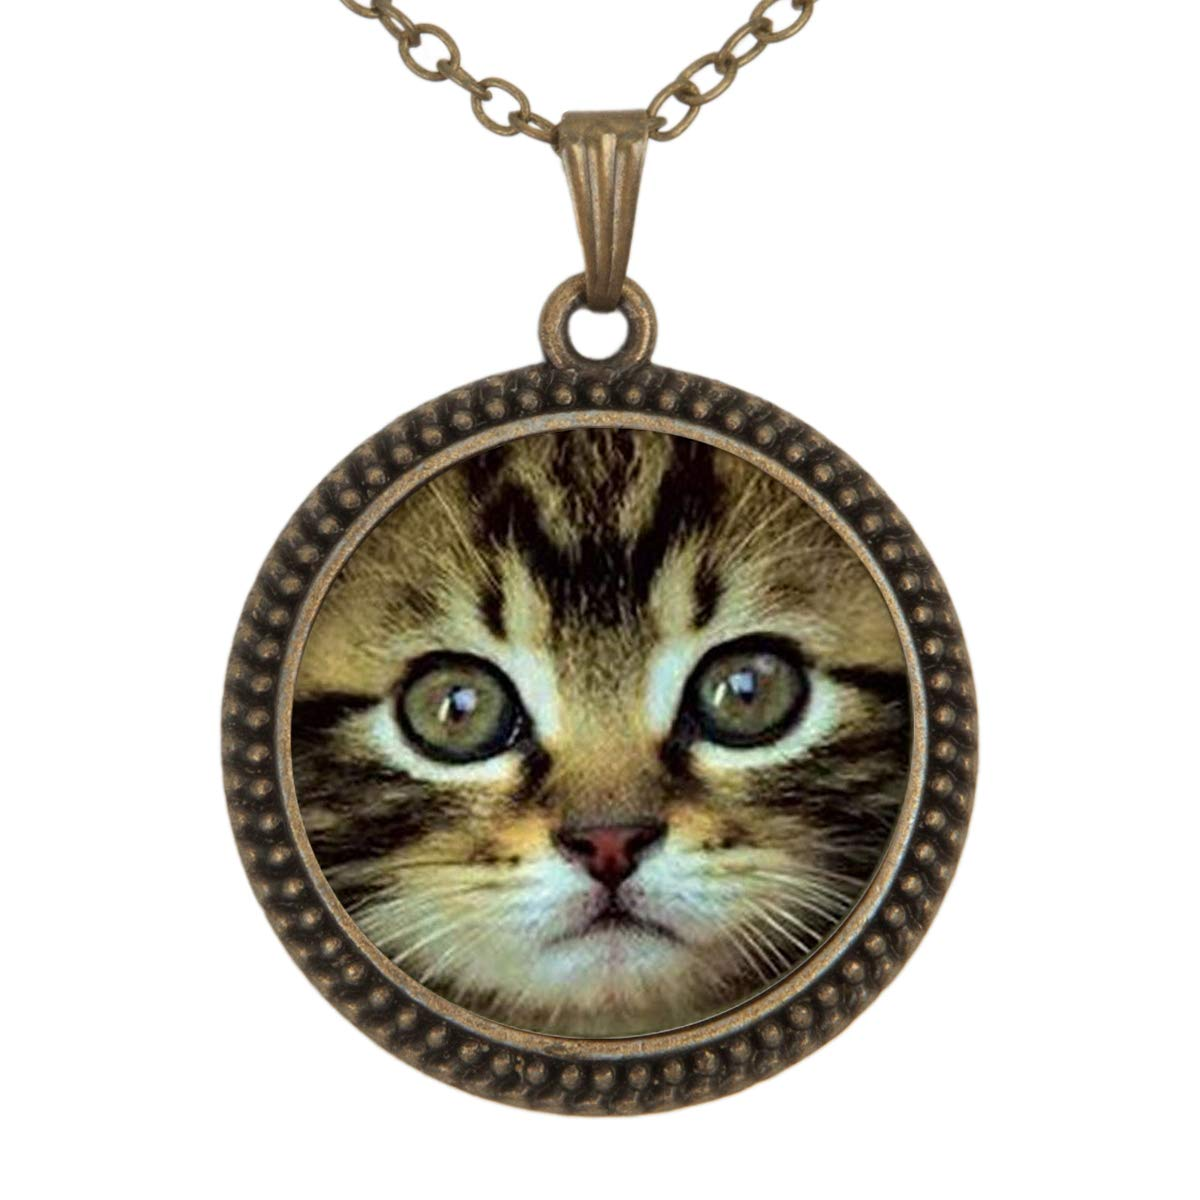 Lightrain Cute Cat Face Pendant Necklace Vintage Bronze Chain Statement Necklace Handmade Jewelry Gifts